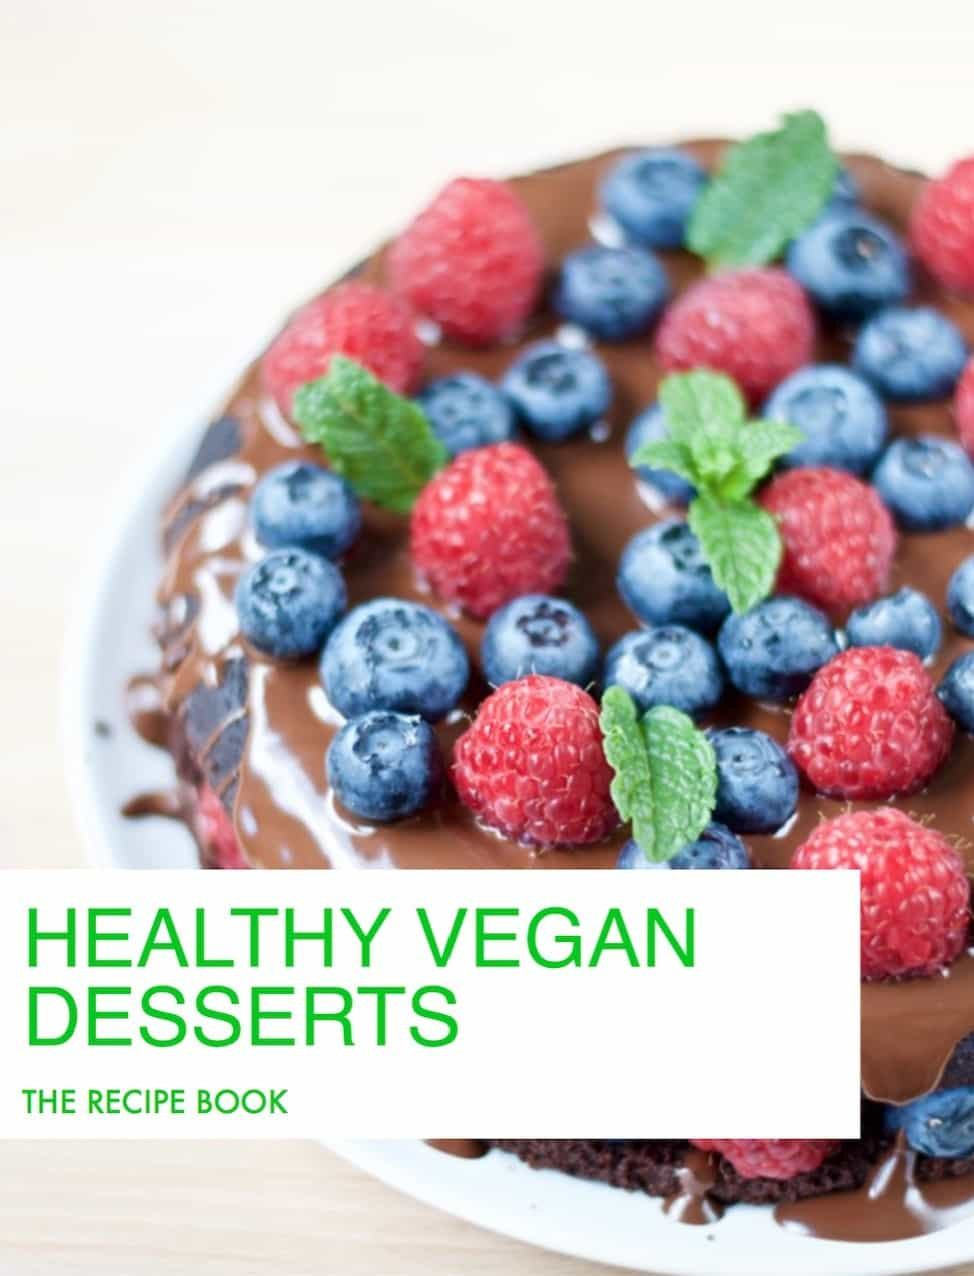 Vegan Healthy Desserts  10 Favorite Taco Recipes Veggies Save The Day